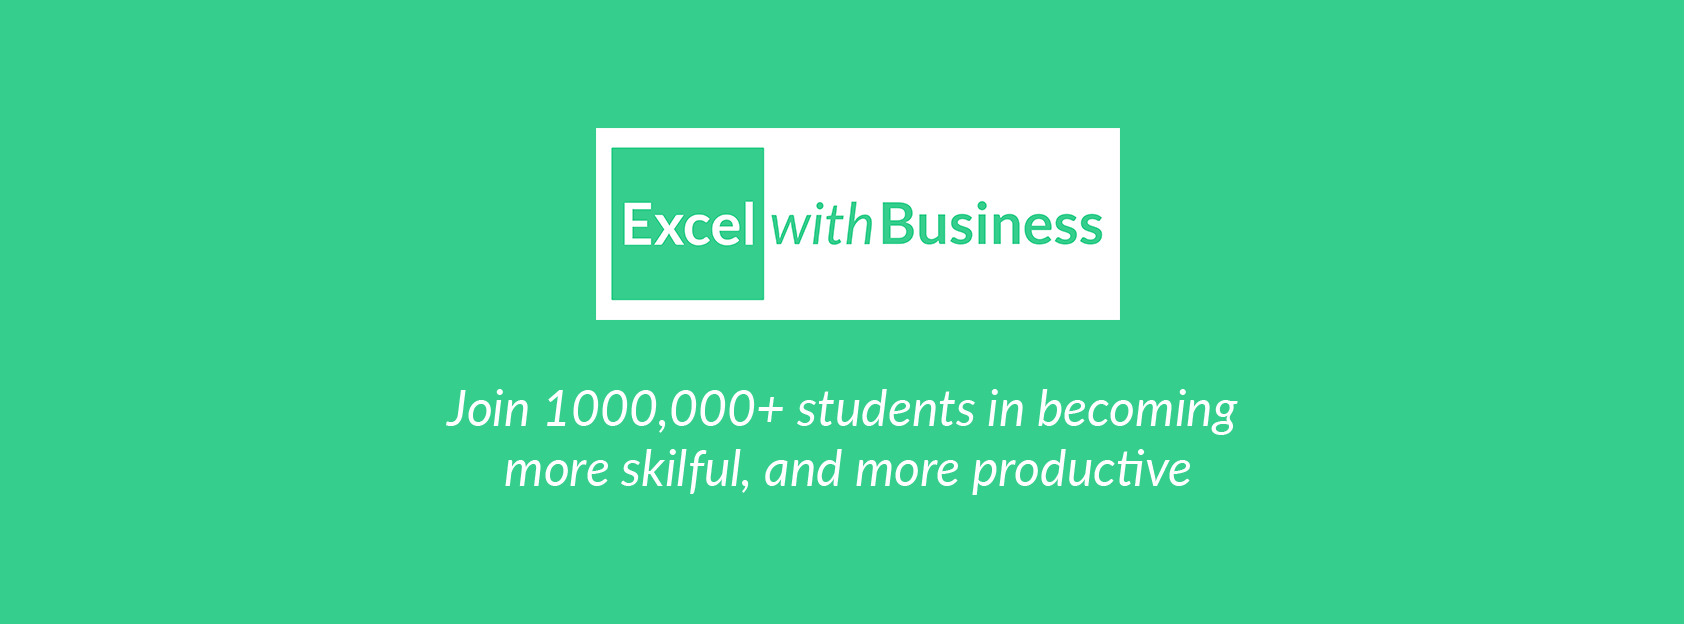 About Excel With Business Homepage